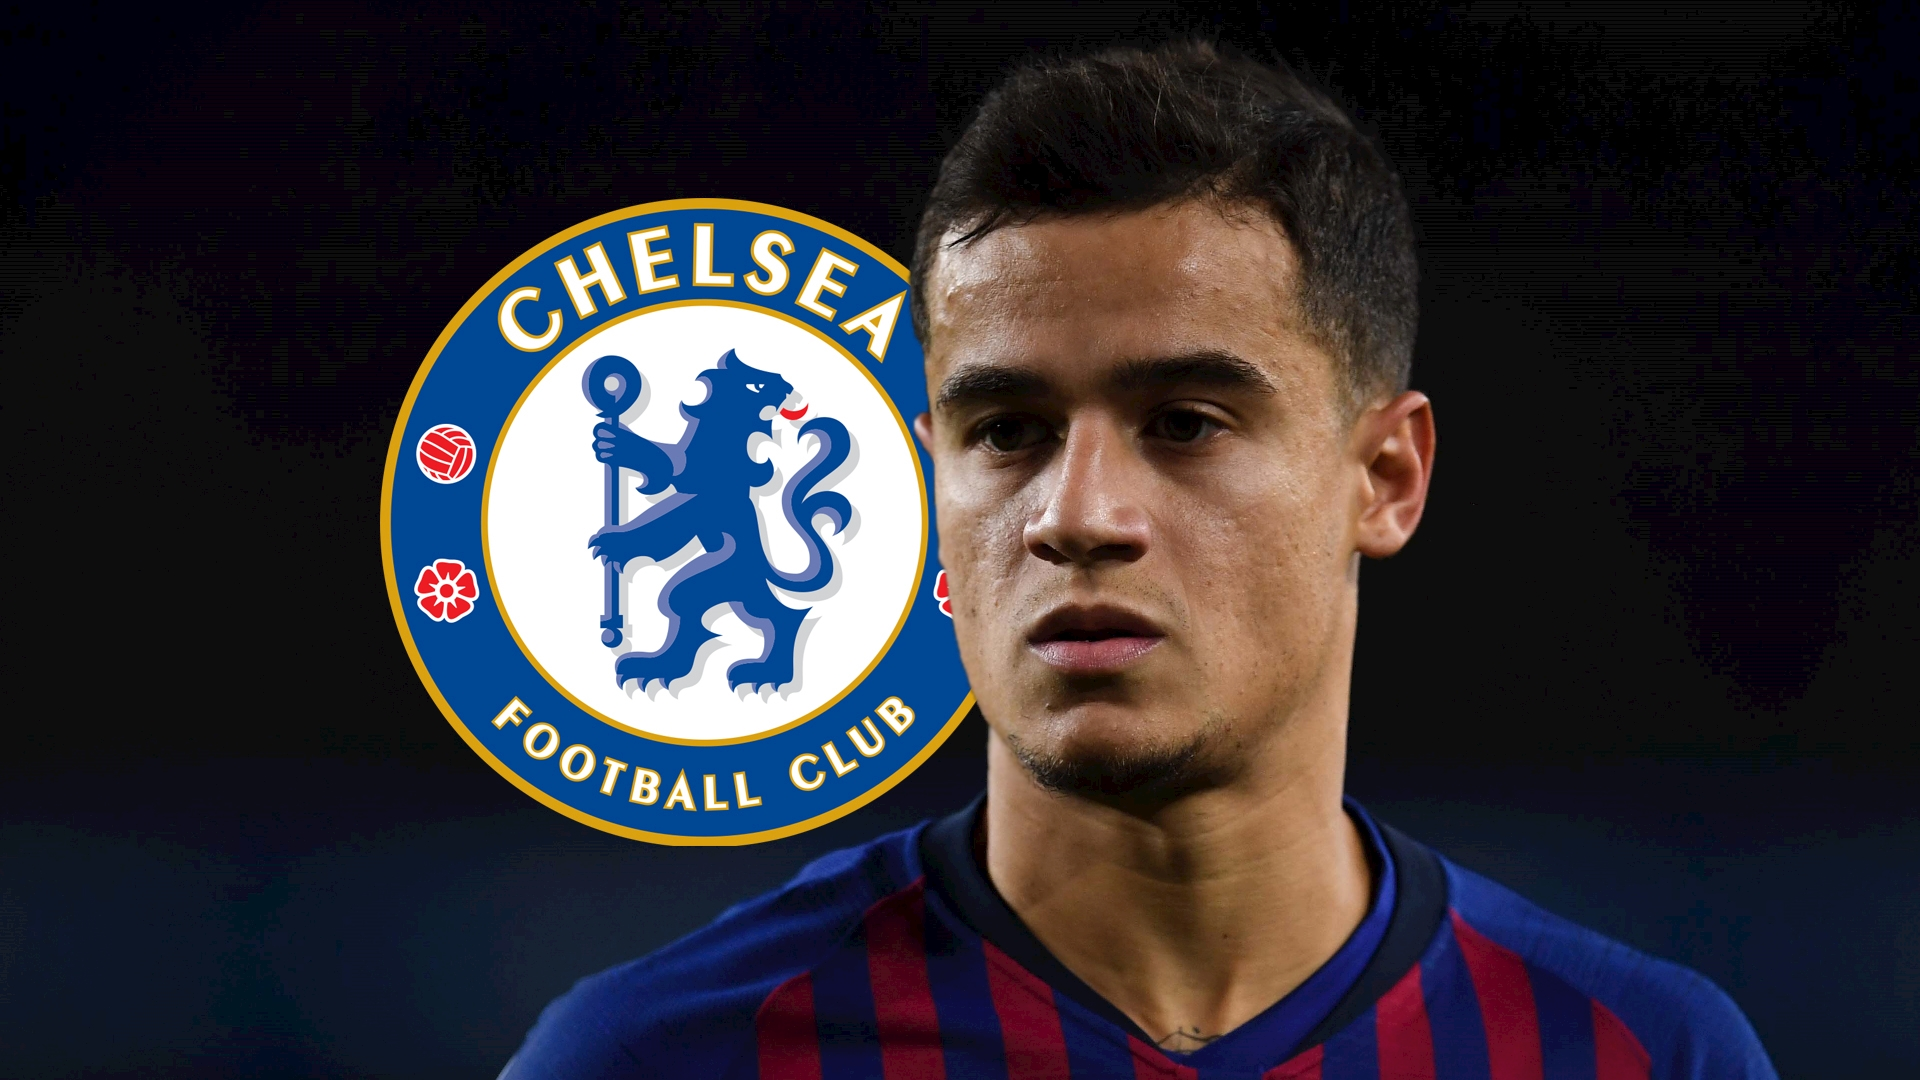 Chelsea buys Coutinho as they expect Sancho to join Man United - Bóng Đá